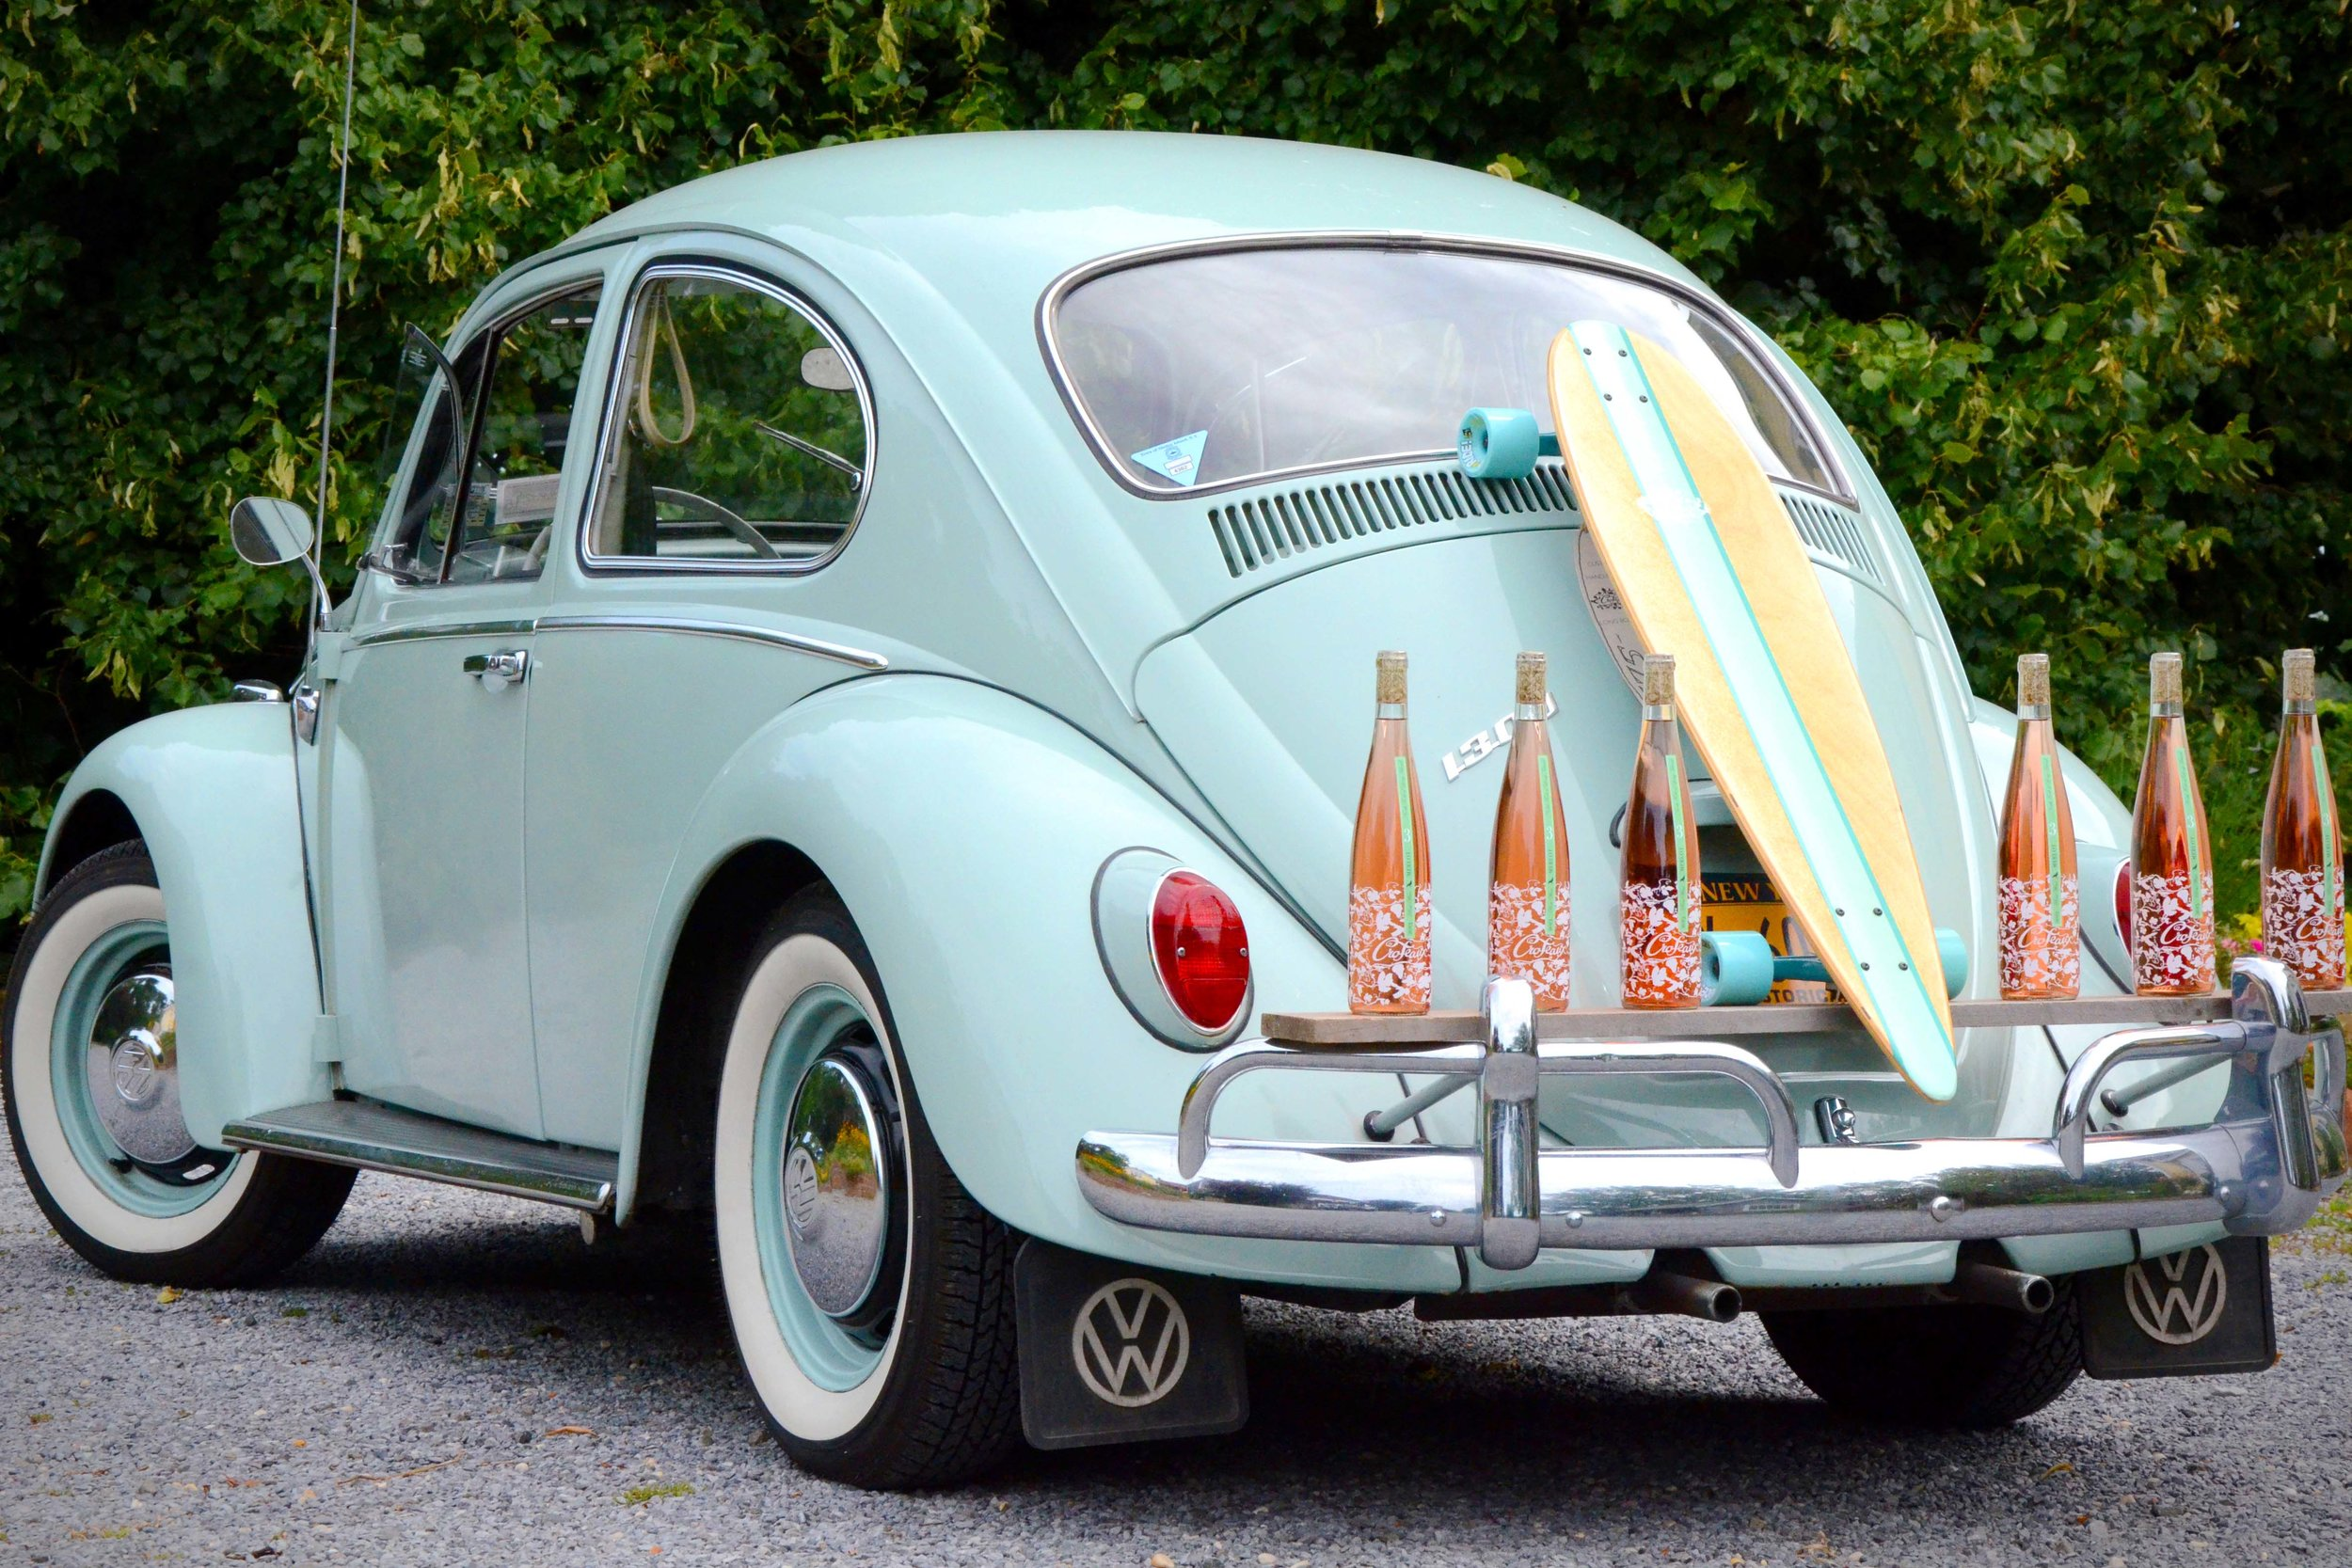 Vintage 1966 VW Beetle with Croteaux Rosé at the Tasting Barn